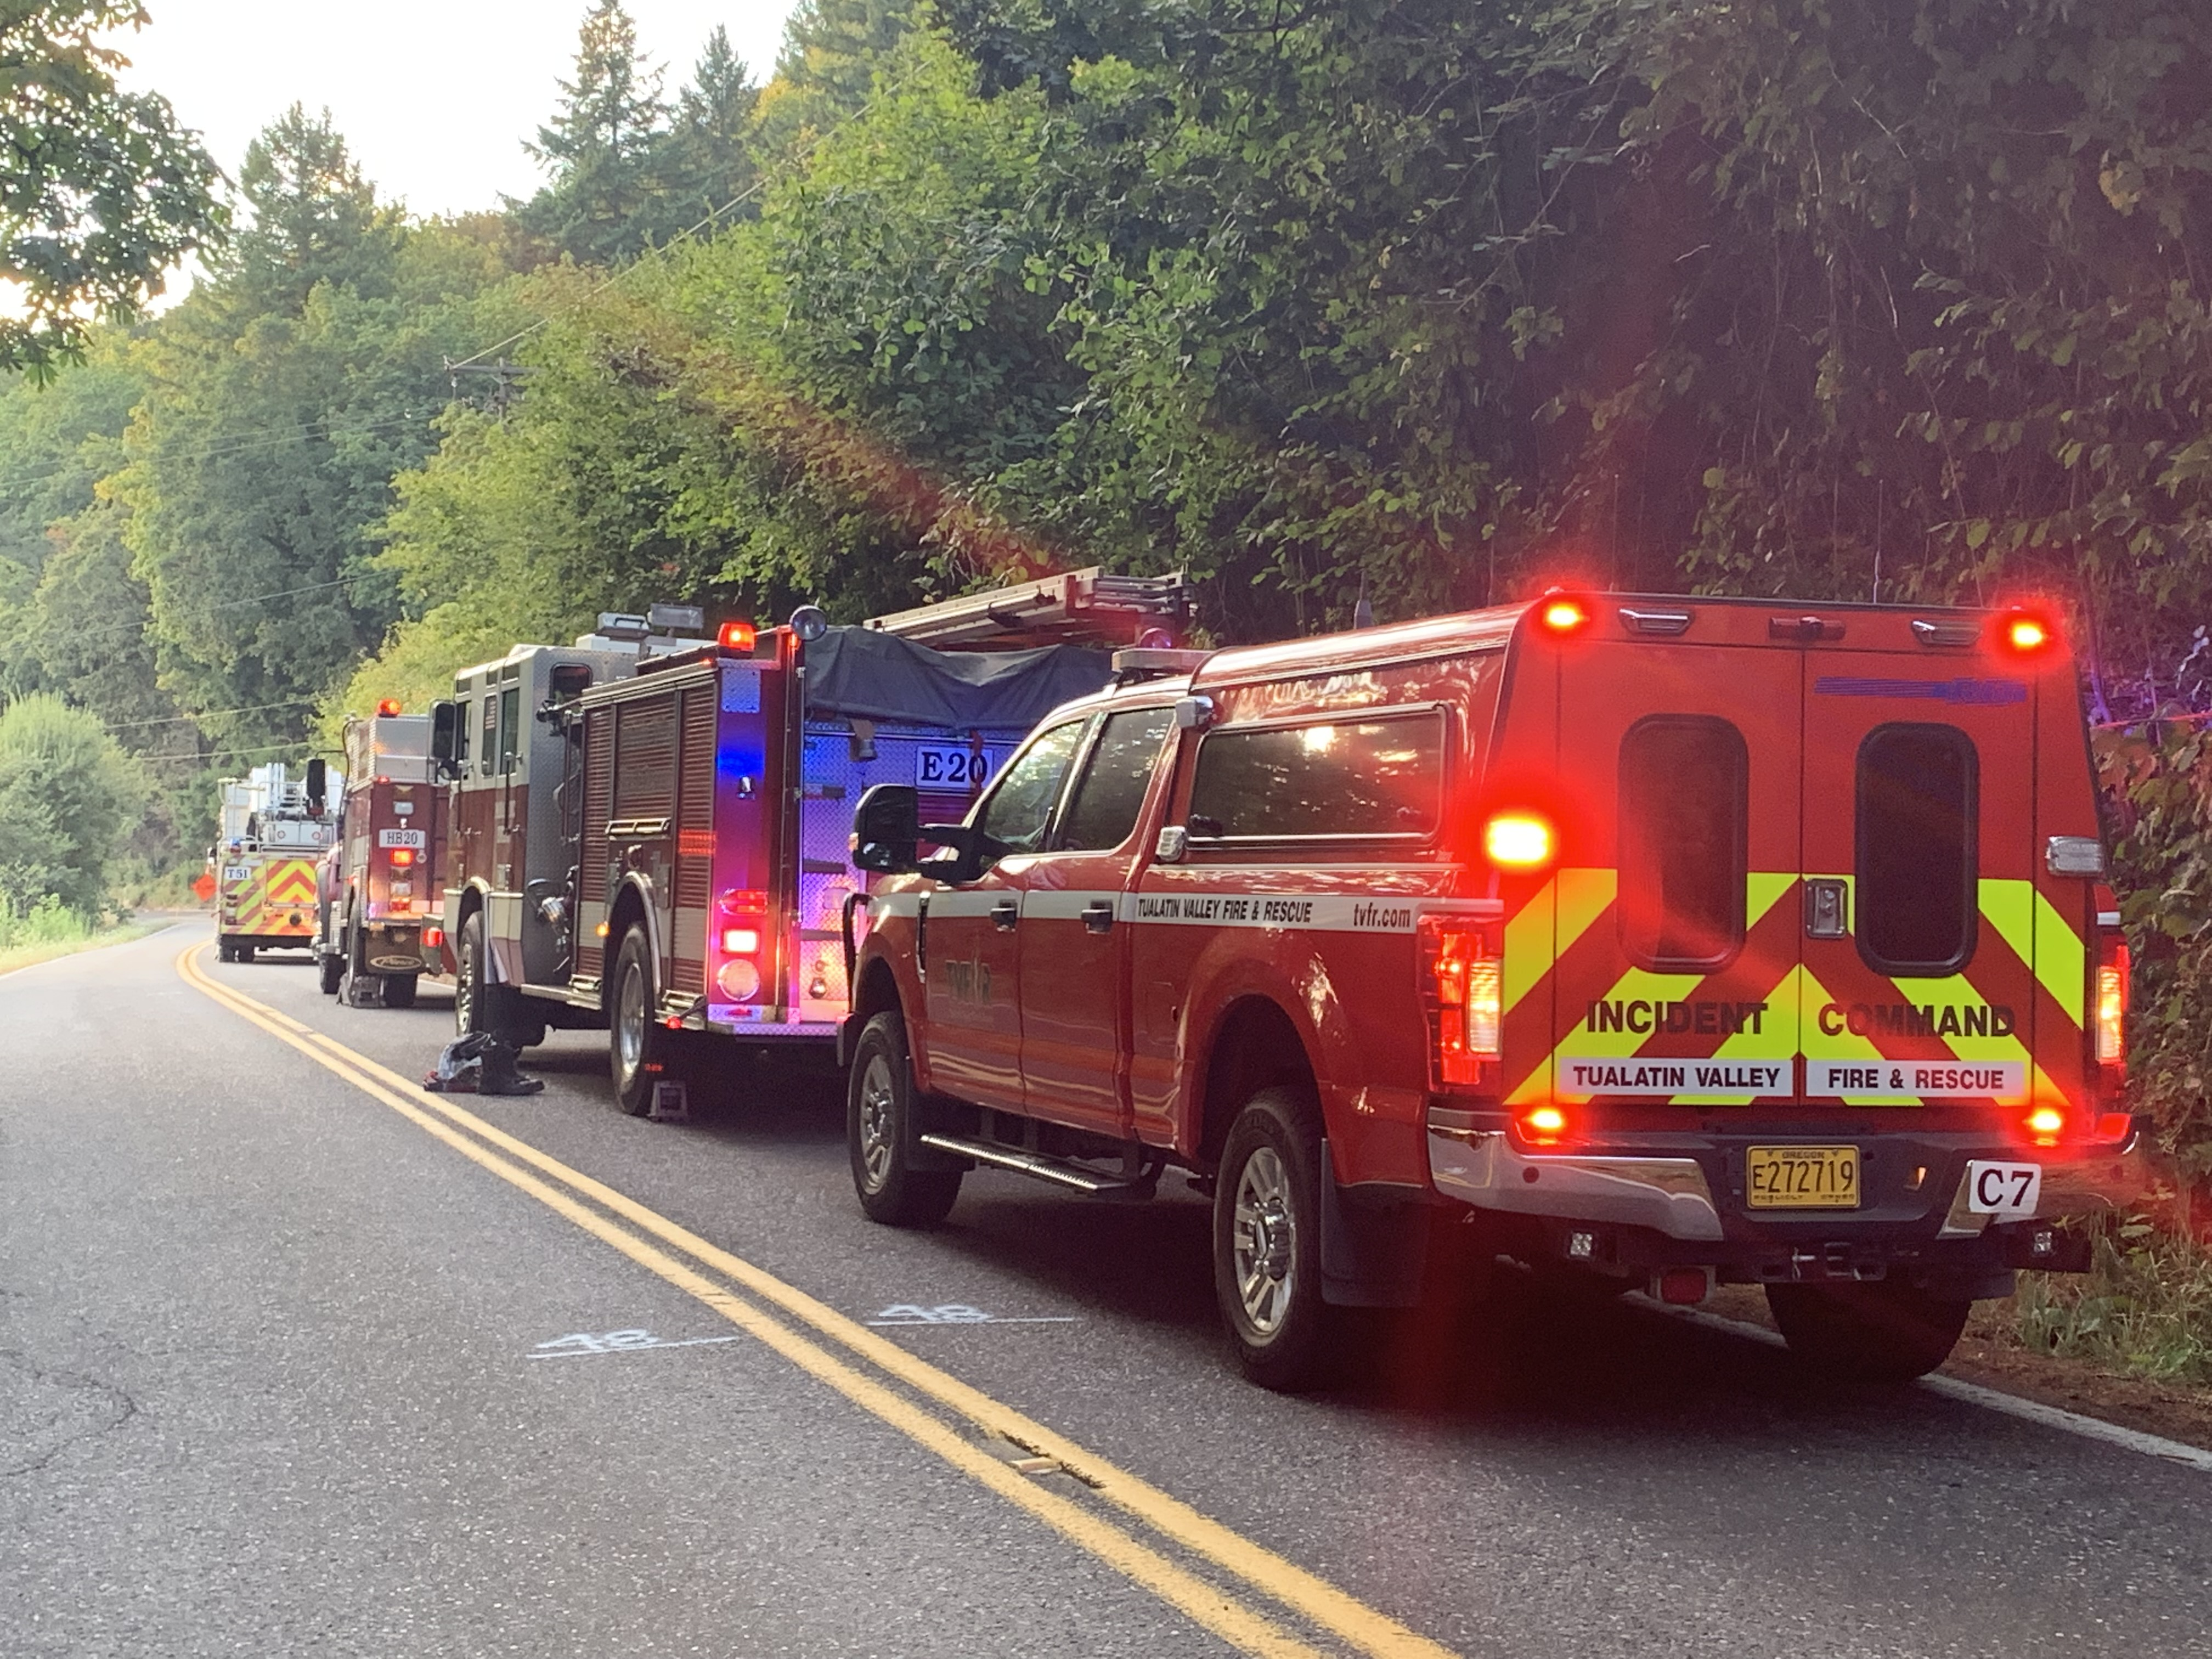 Update: Hang glider rescued in Newberg after stuck in trees